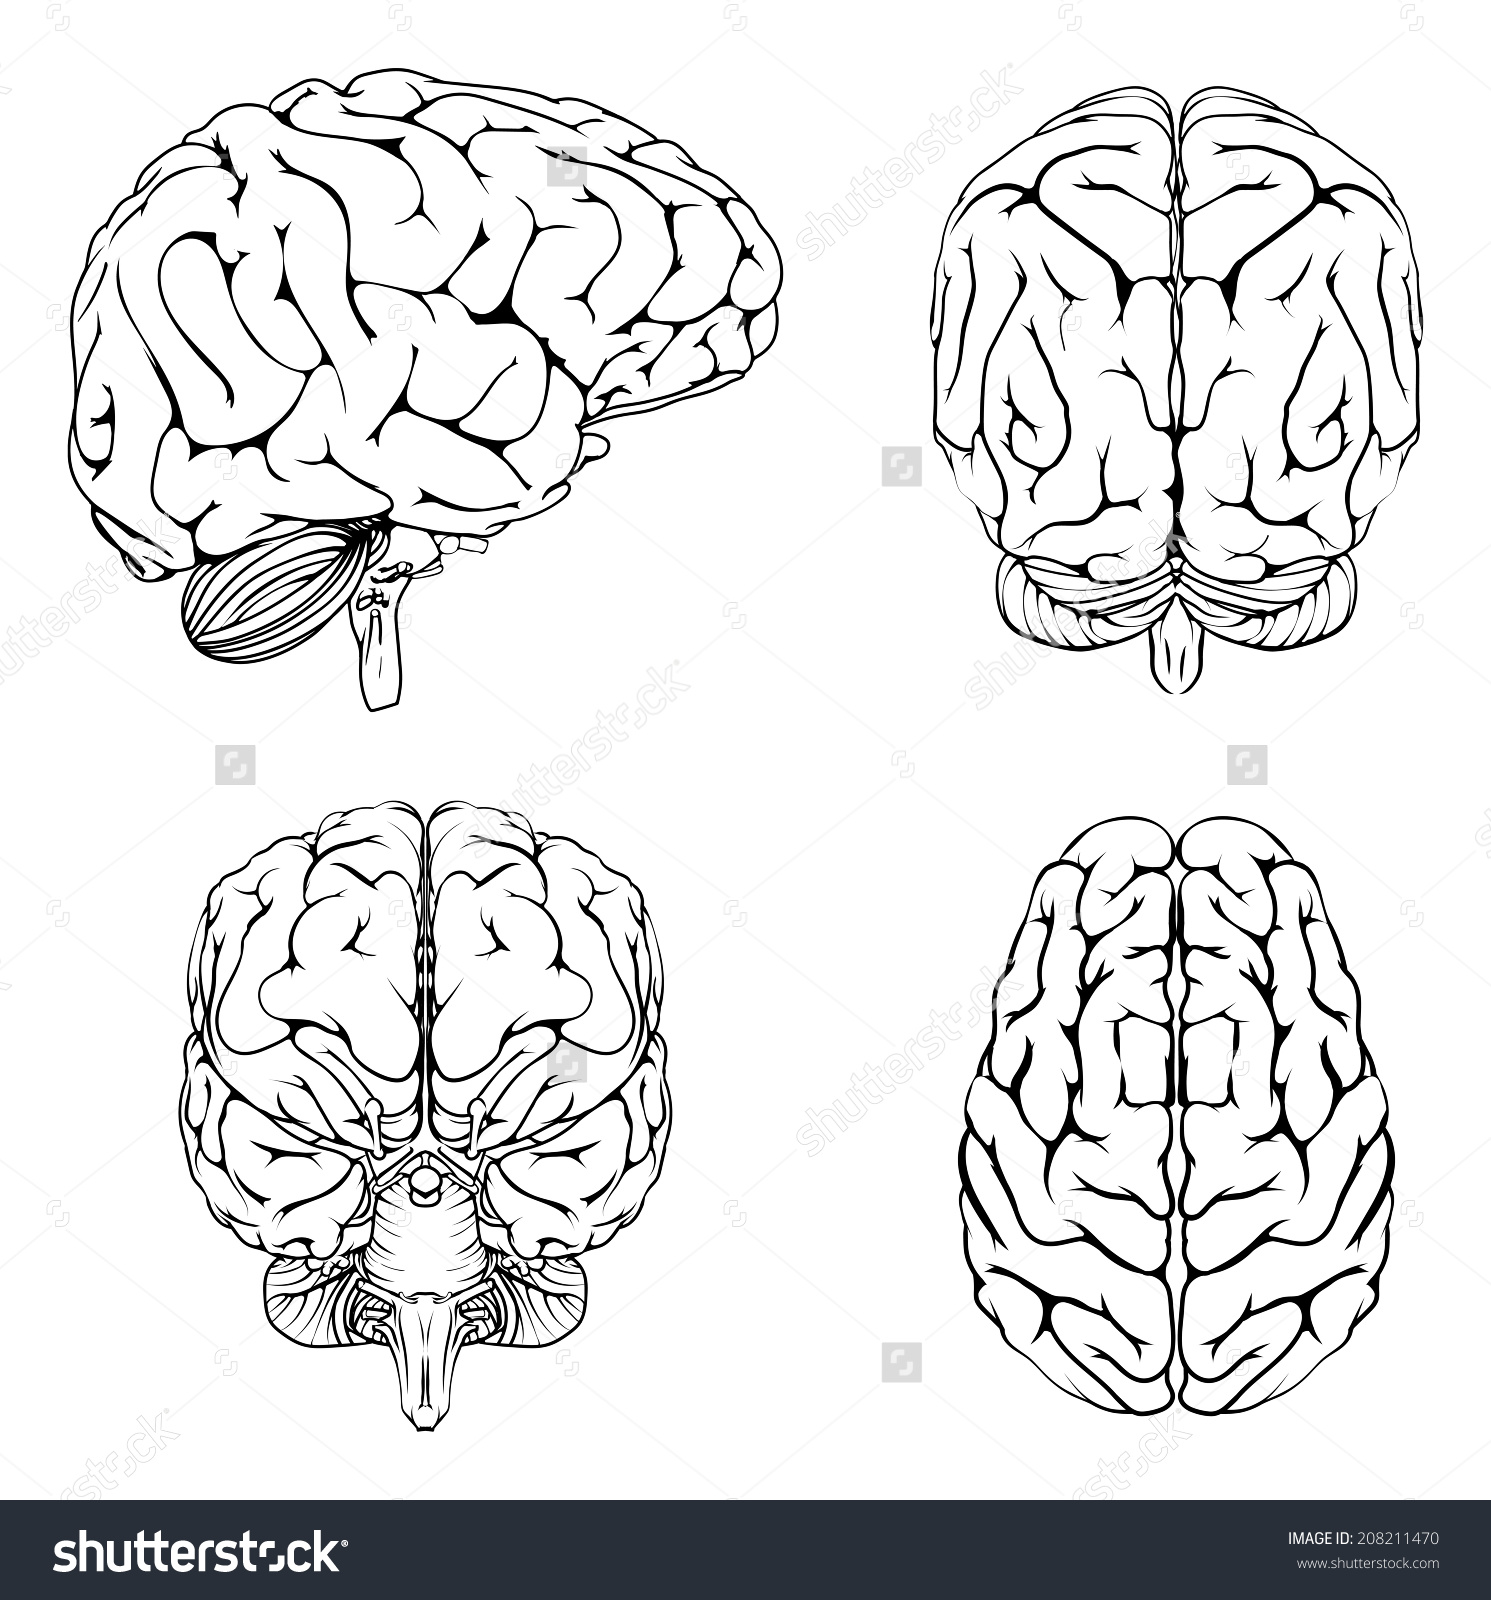 Blank human brain outline